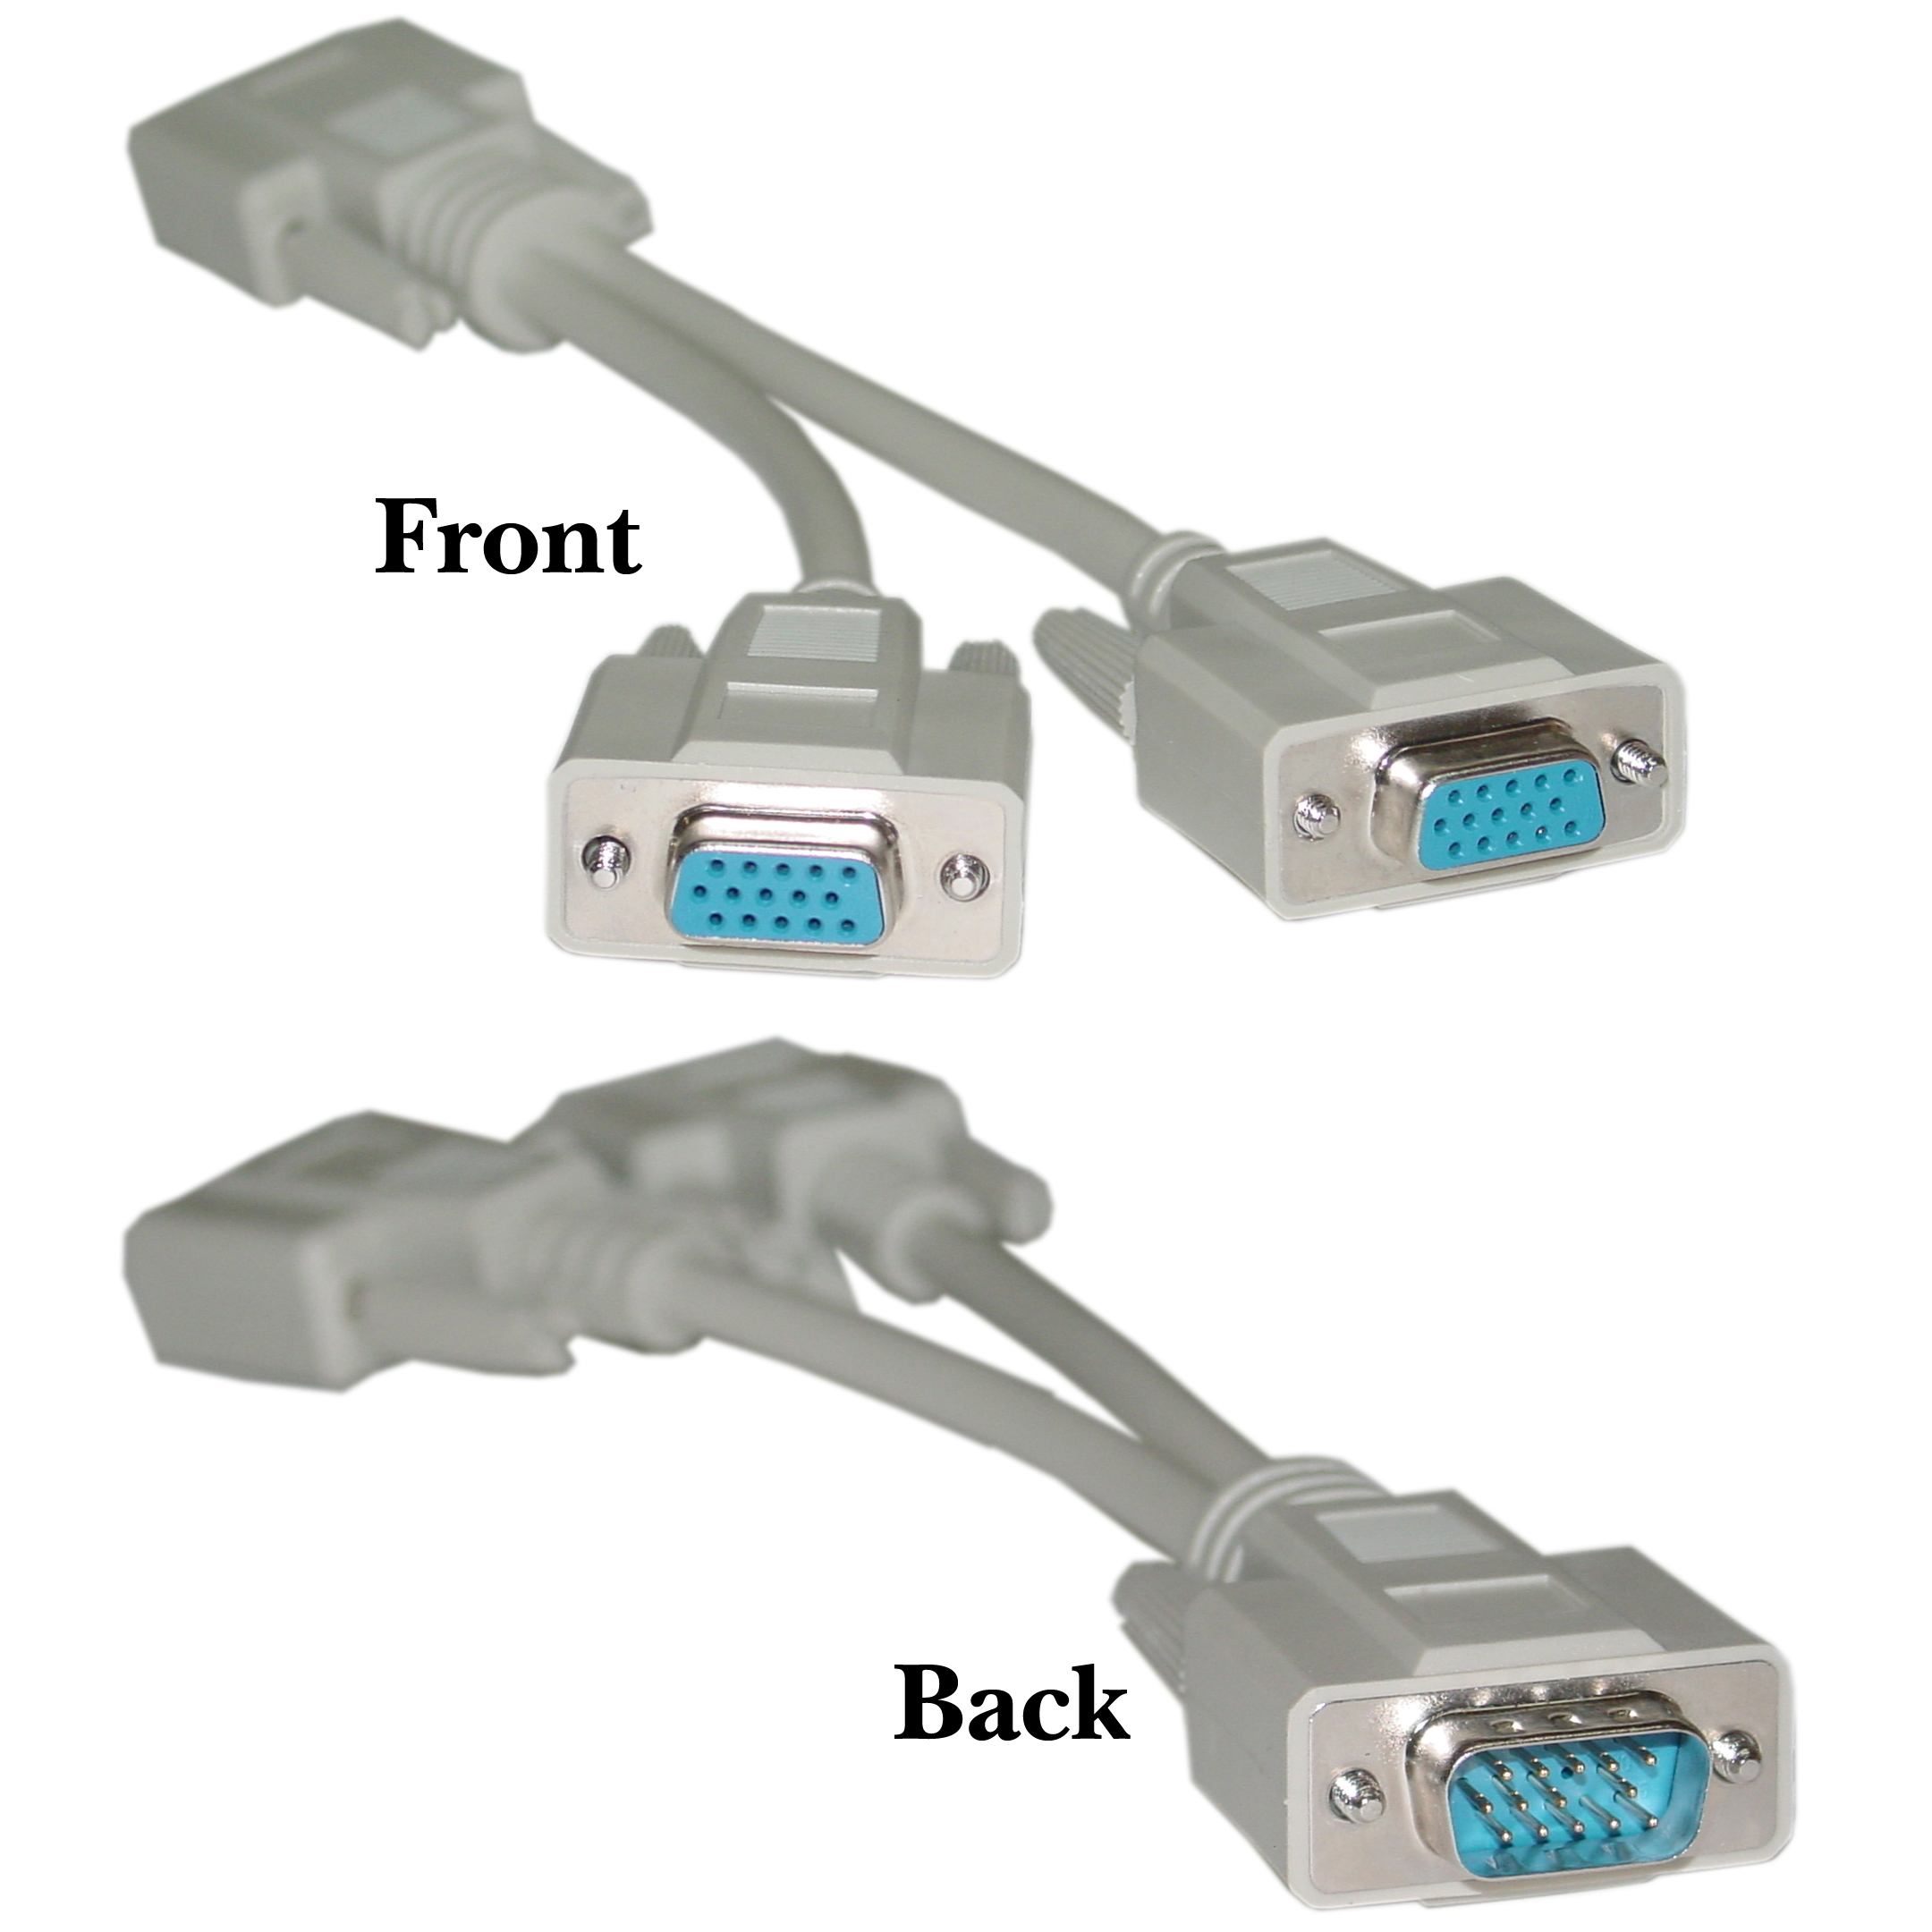 Adaptor Cables for Sale in Canada - Long McQuade